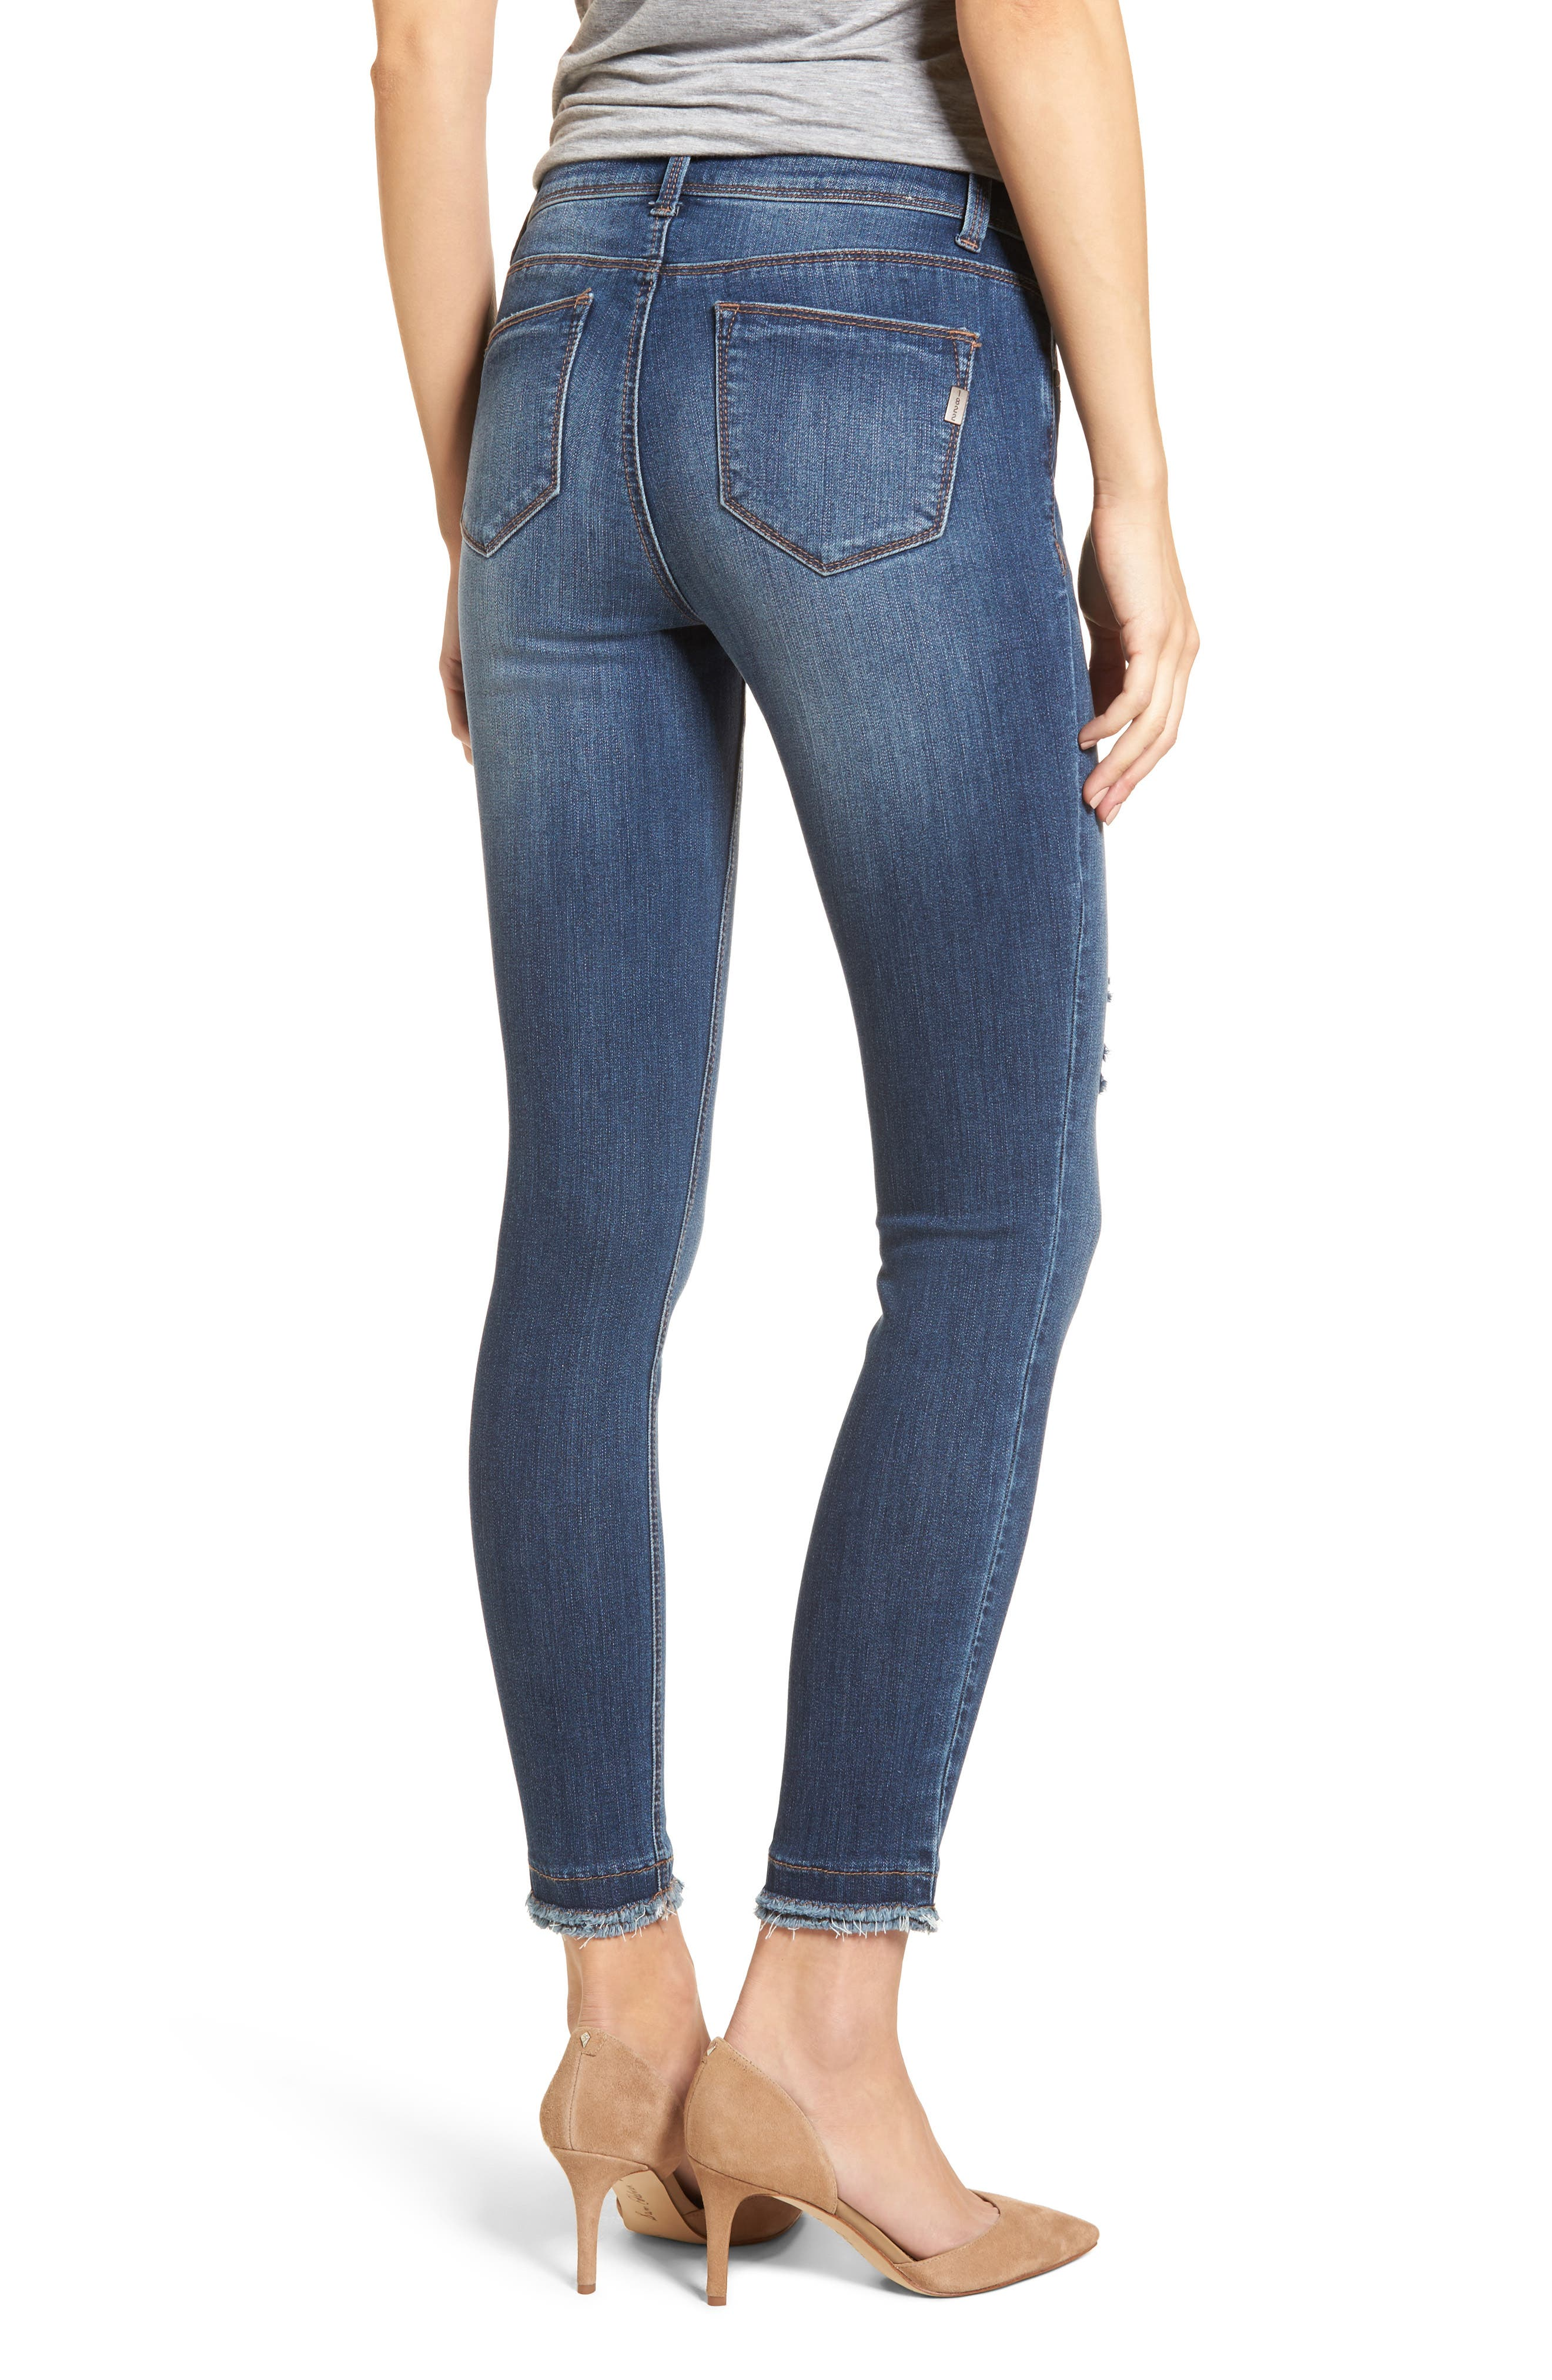 Alternate Image 2  - 1822 Denim Double Fray Hem Skinny Jeans (Gerard)